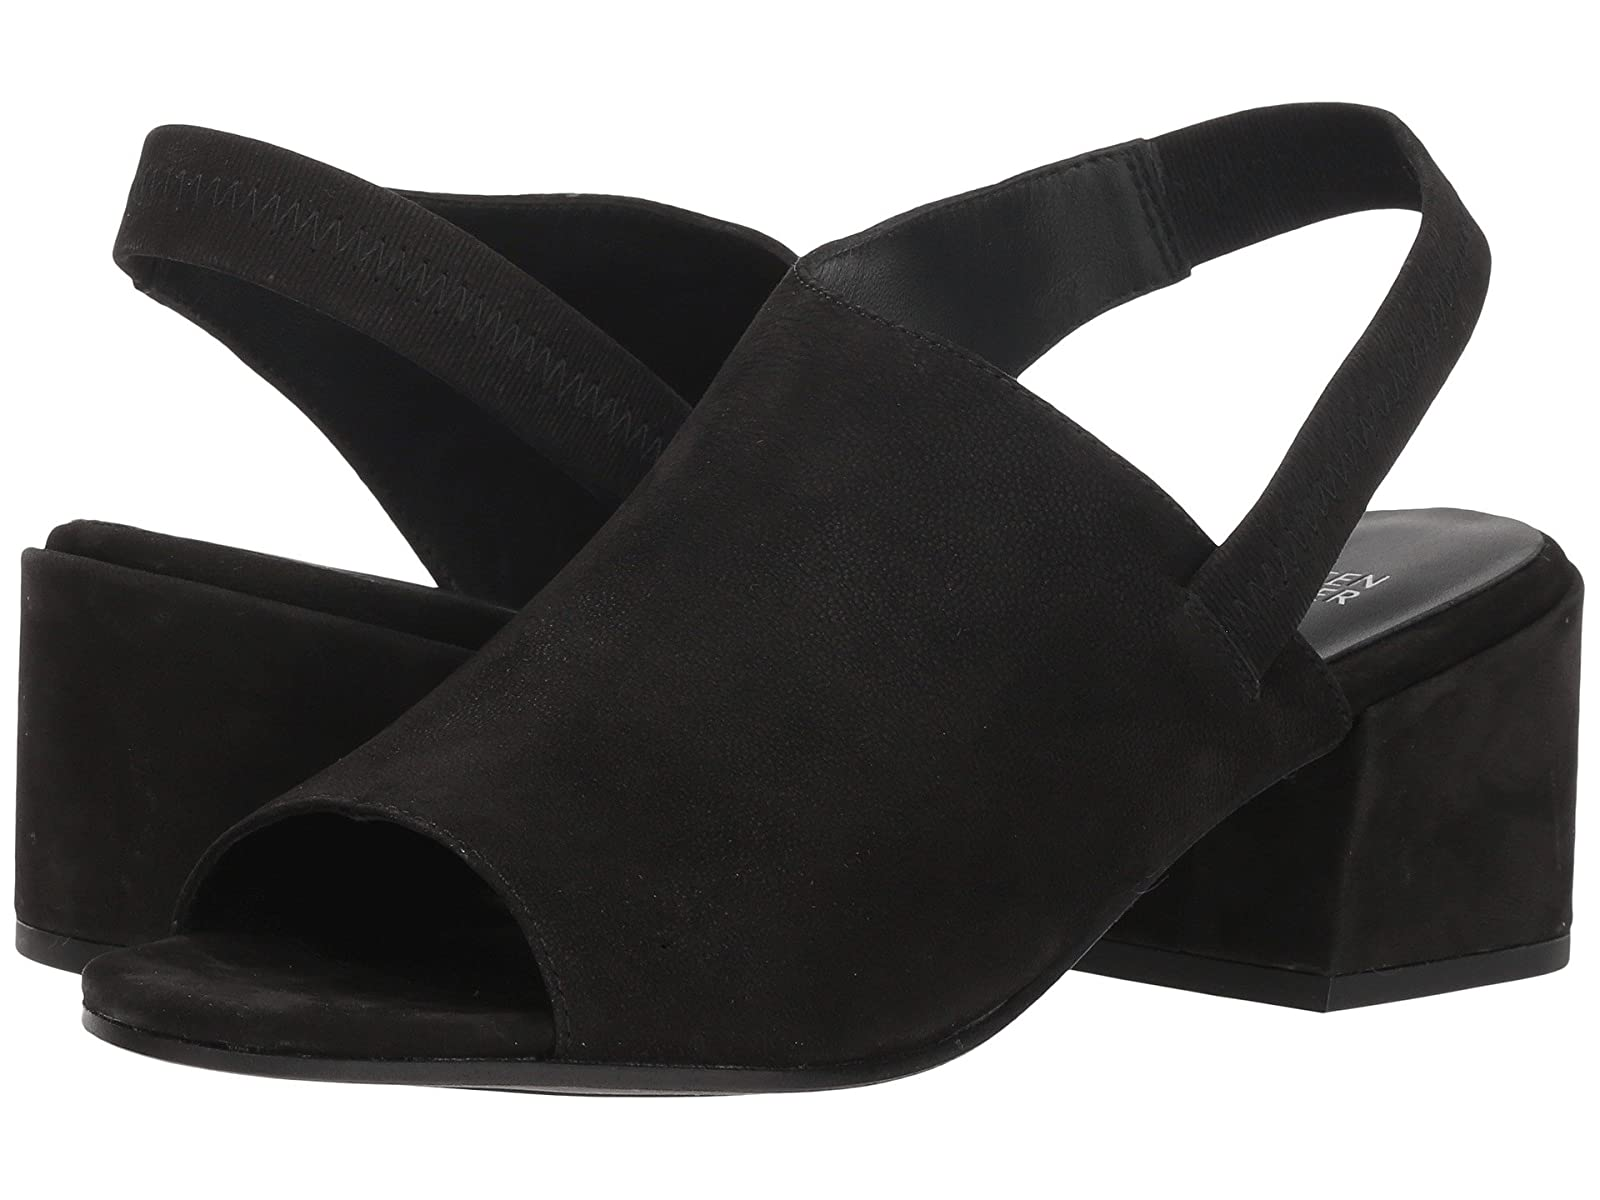 Eileen Fisher LeighAtmospheric grades have affordable shoes